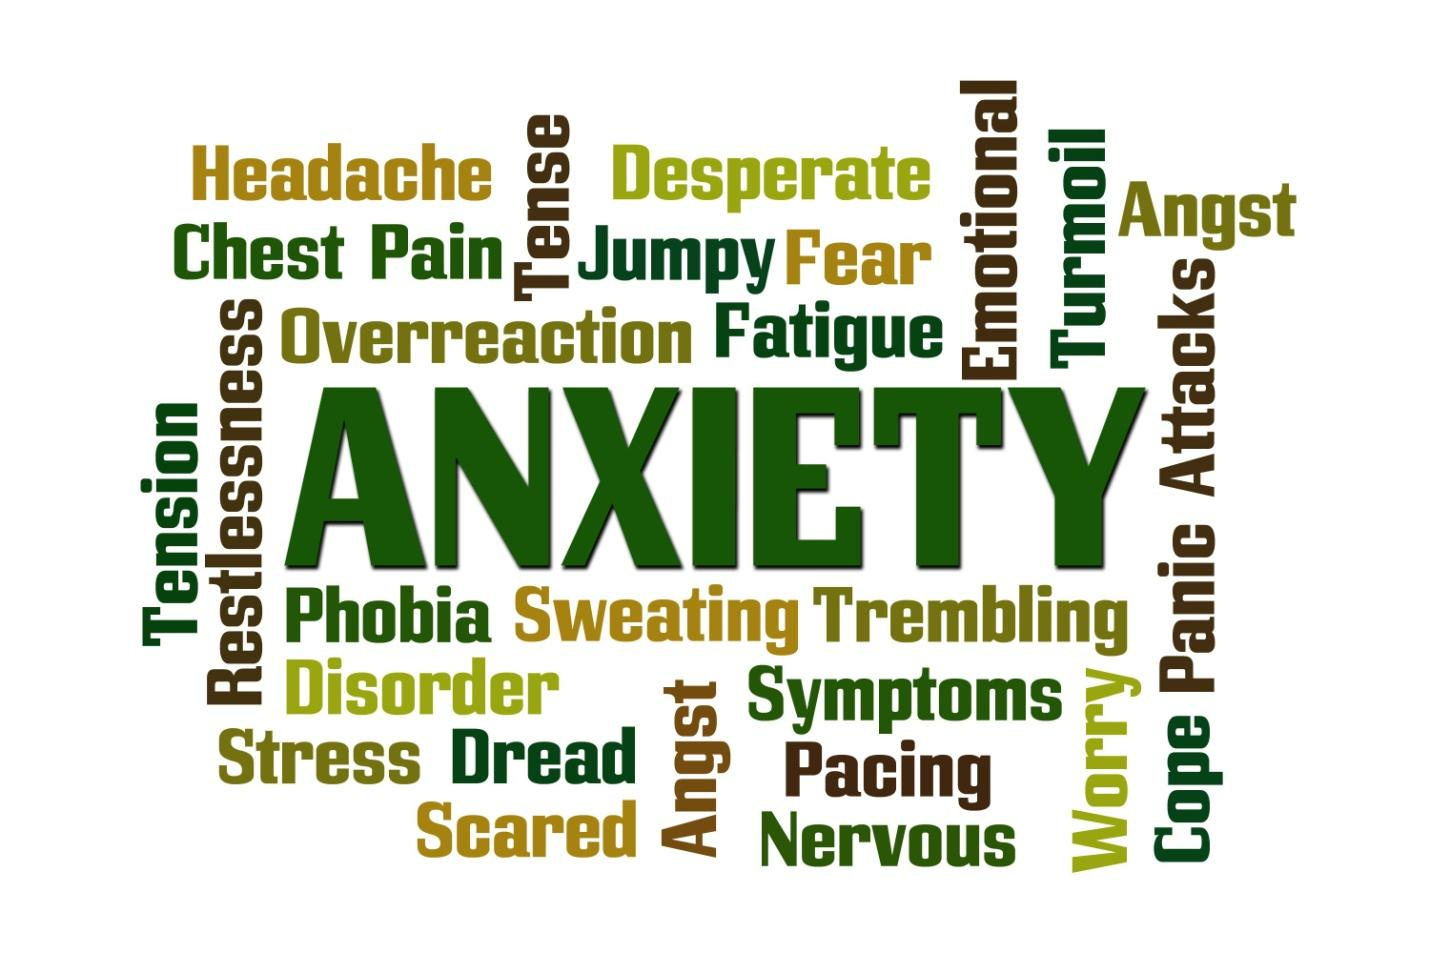 Common Anxiety Disorders and Their Causes   by Ahmed Faizan Sheikh   Medium